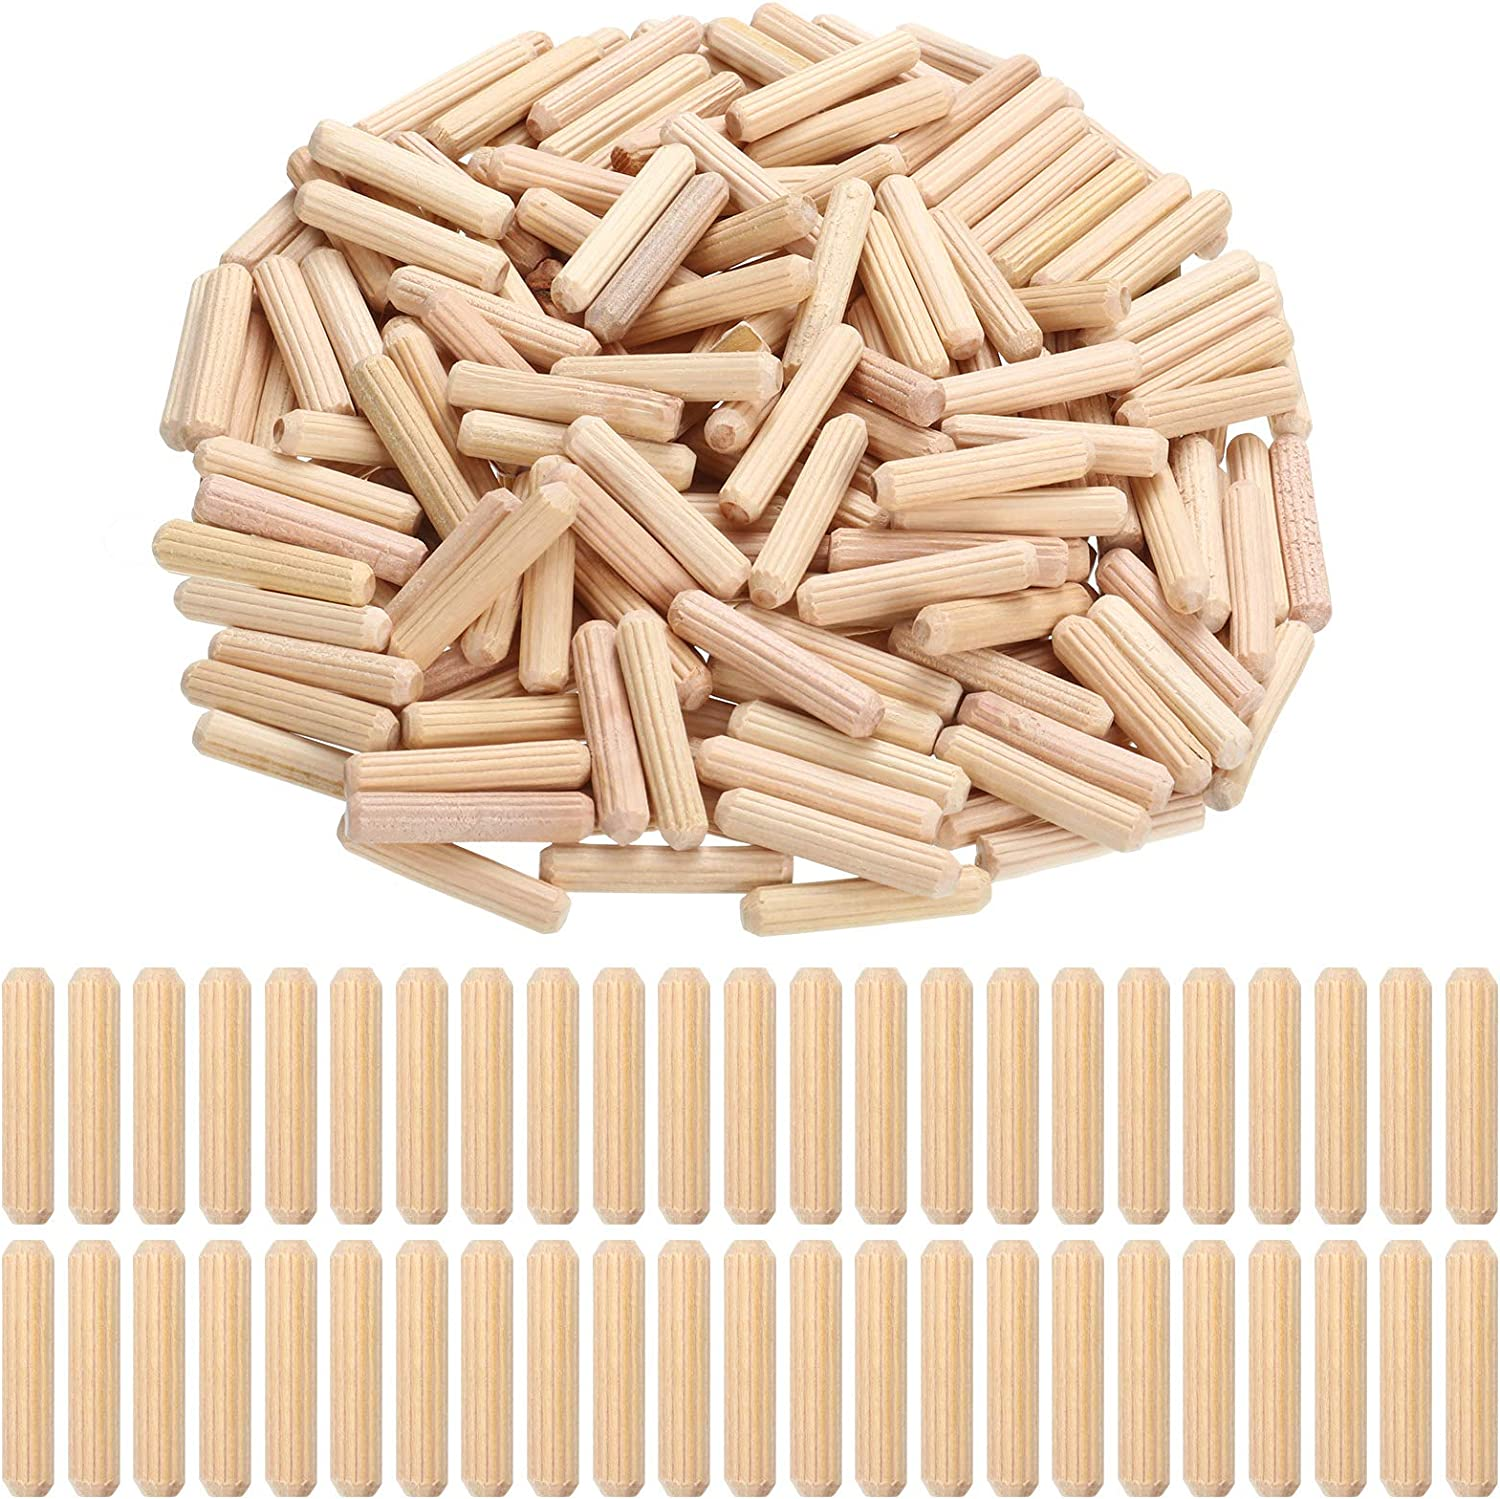 Kansas City Mall Max 46% OFF Yookeer 200 Pieces 1 4 x 1.2 Inch Fluted Dowel Wood Pins Wooden